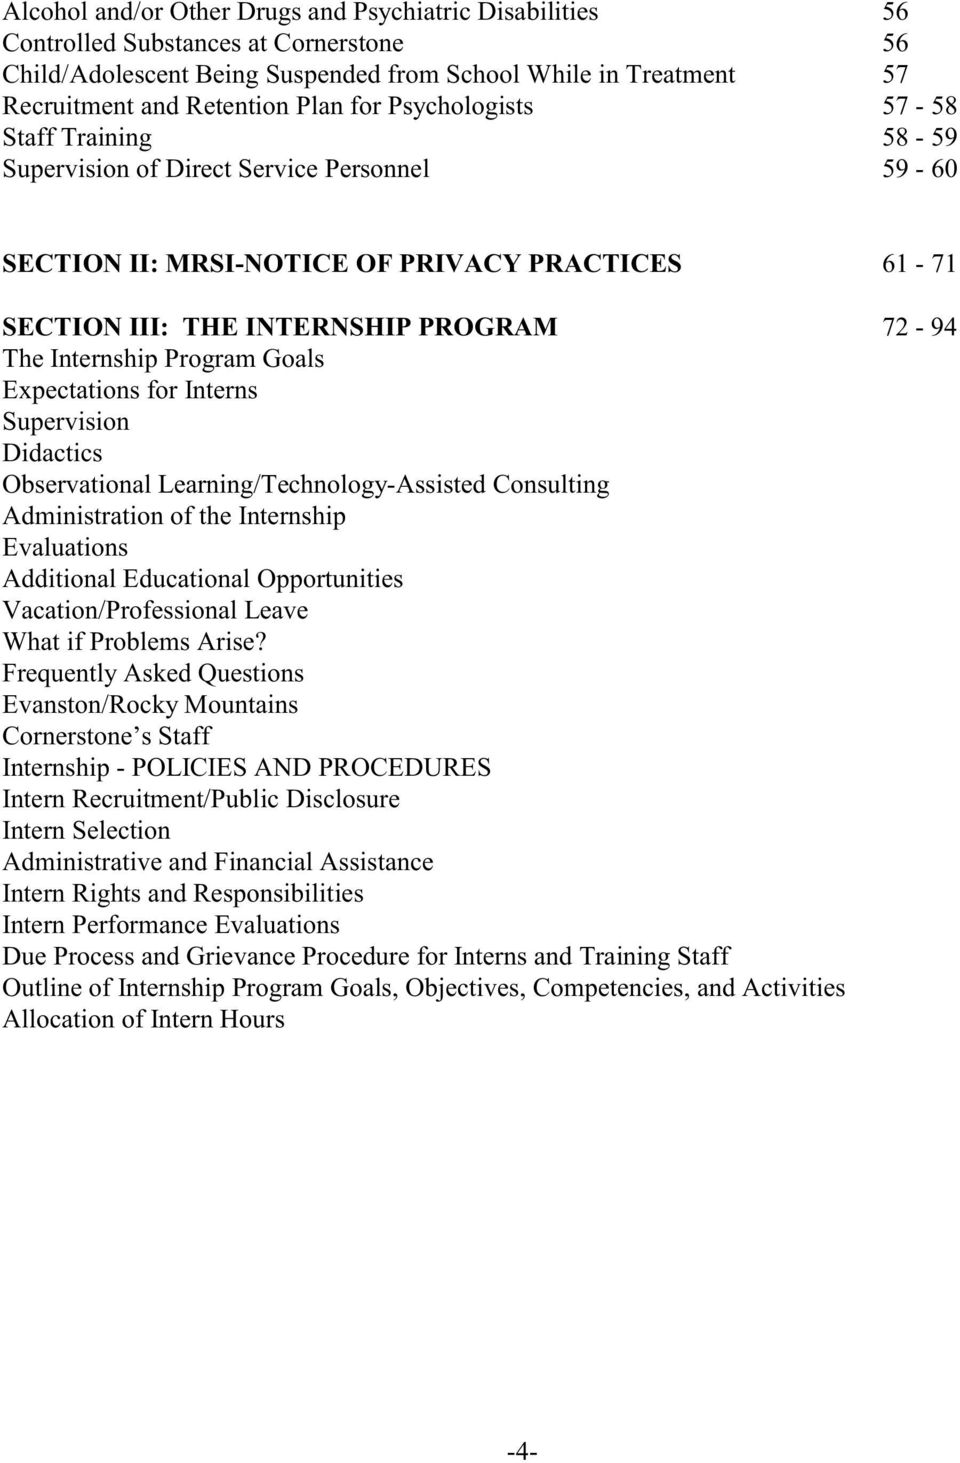 Program Goals Expectations for Interns Supervision Didactics Observational Learning/Technology-Assisted Consulting Administration of the Internship Evaluations Additional Educational Opportunities